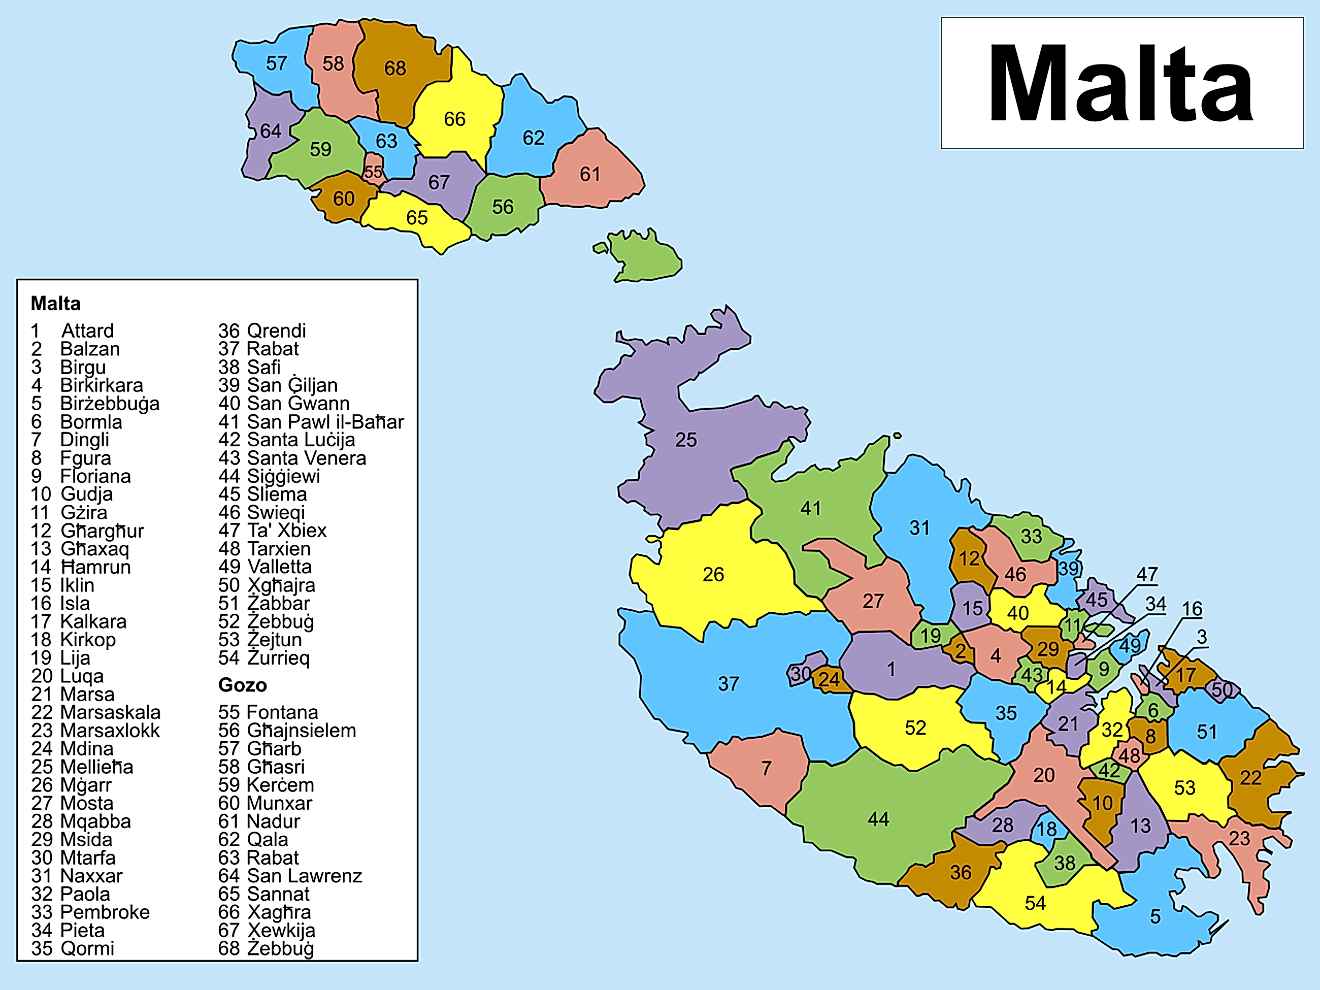 Political Map of Malta showing its 68 localities and the capital city Valletta. Credit: Shazz/Wikimedia.org